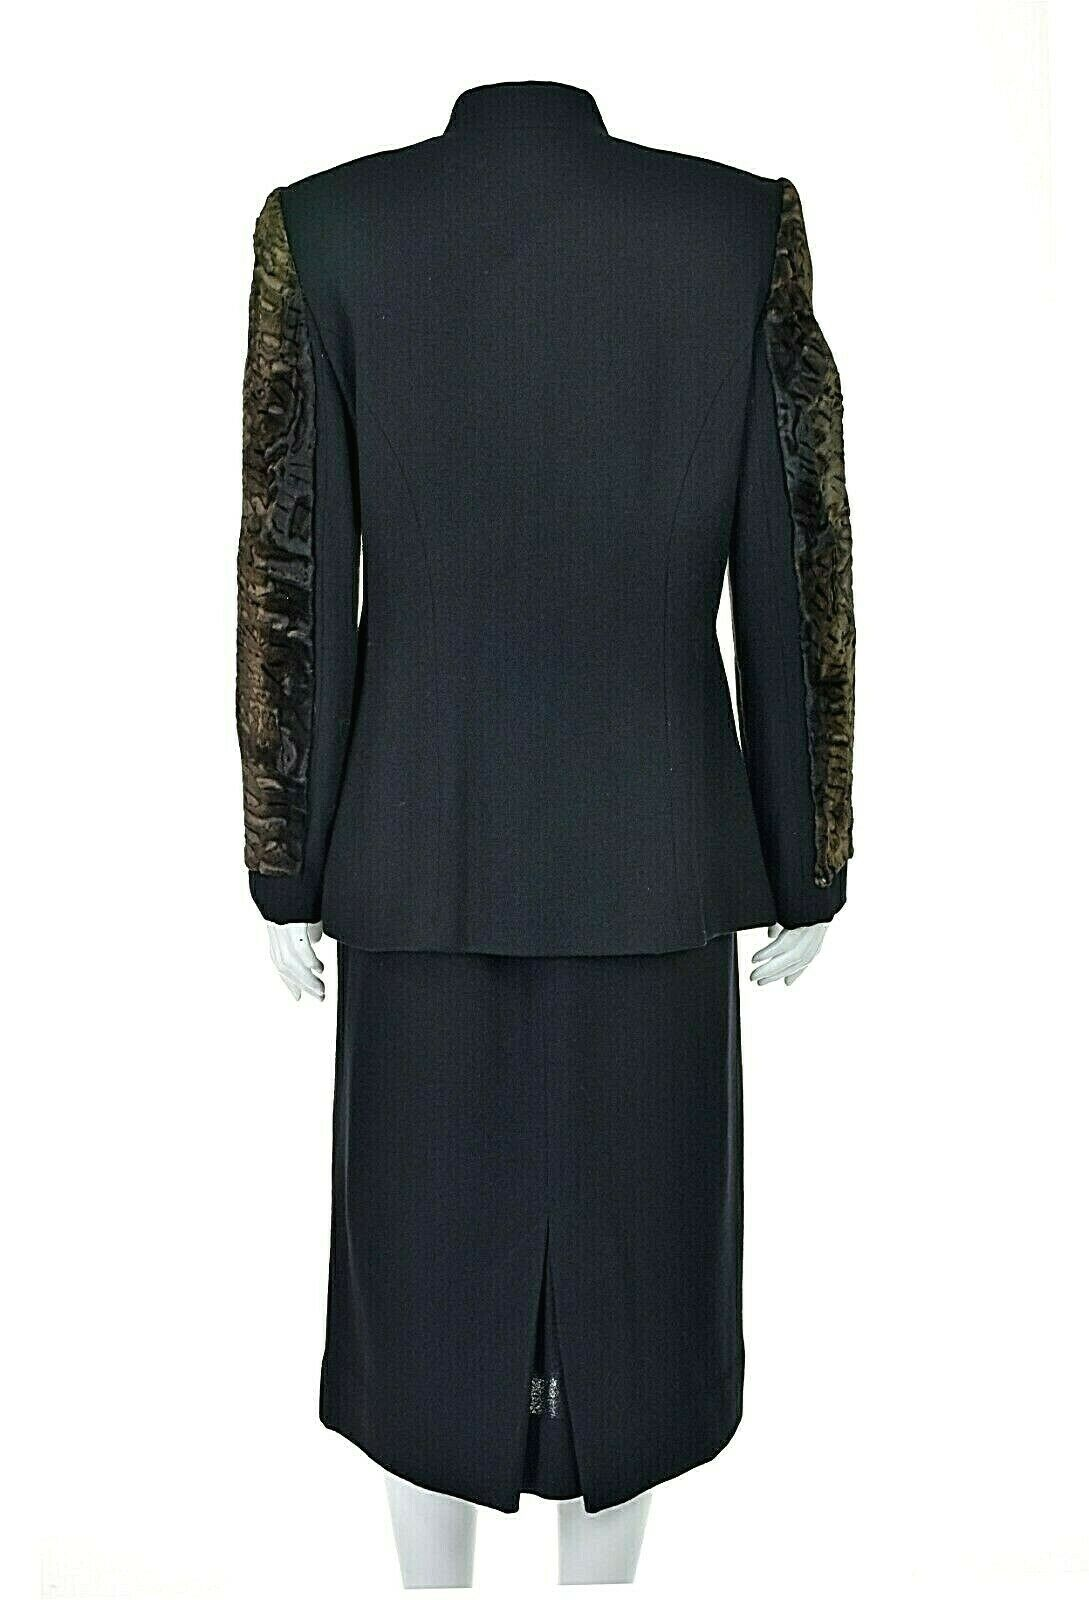 TRAVILLA Vintage Wool Crepe Skirt Suit with Persi… - image 5